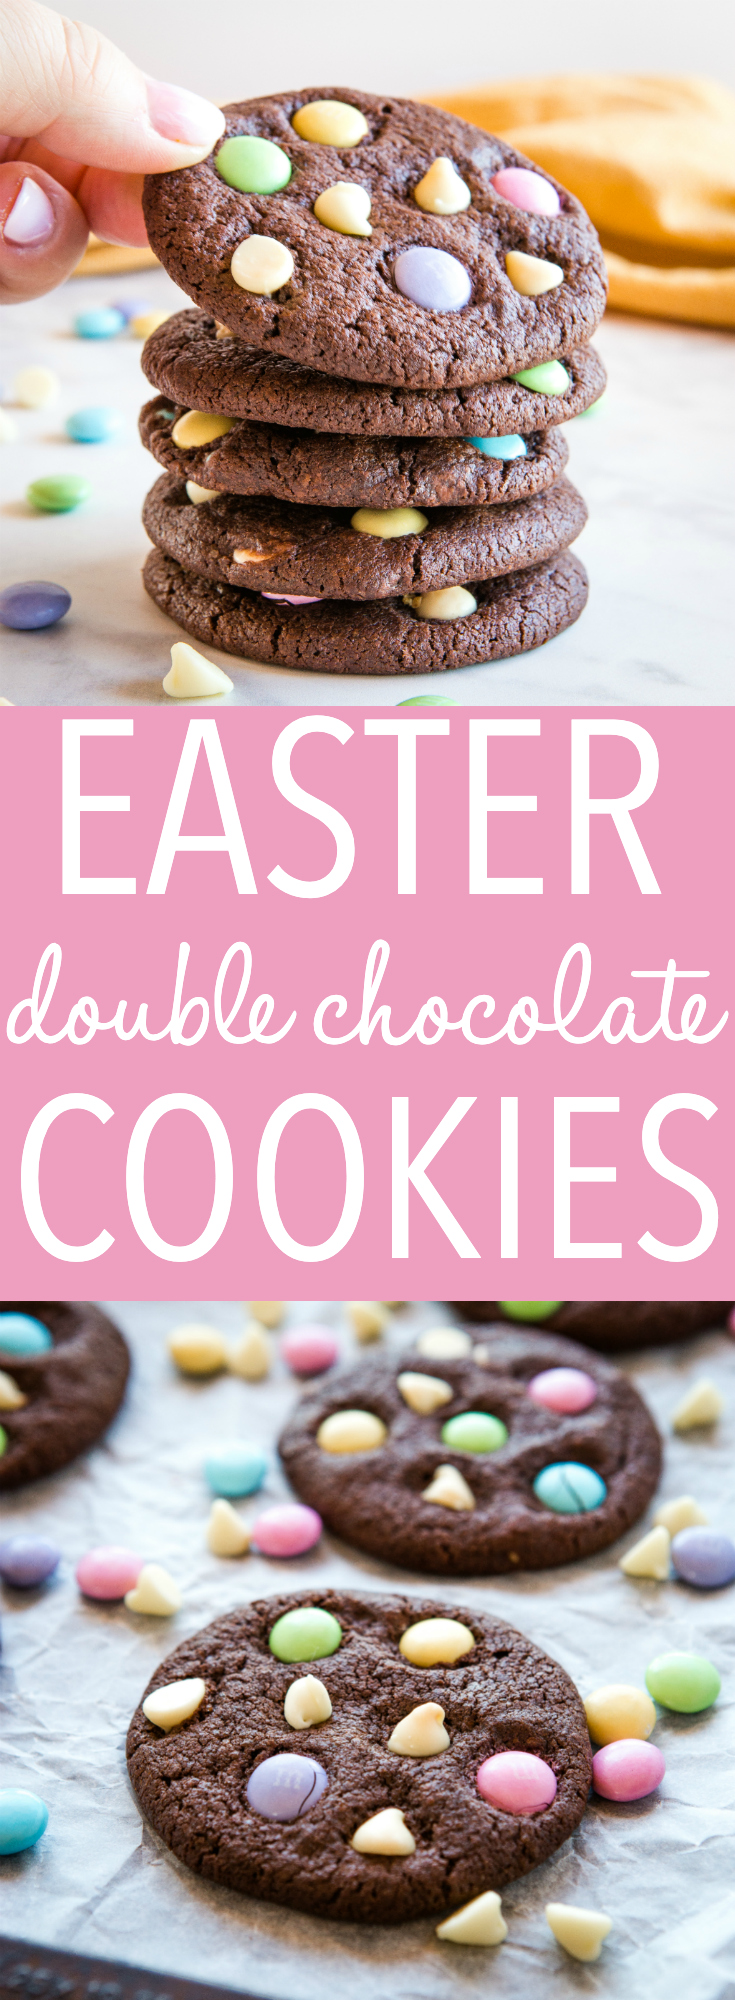 These Easter Double Chocolate Cookies are the perfect fun and easy Easter treat! Crispy on the outside, chewy on the inside, and packed with candy-coated chocolate and white chocolate! Recipe from thebusybaker.ca! #cookies #easter #treat #homemade #spring #m&ms #candy #easy #dessert #recipe via @busybakerblog